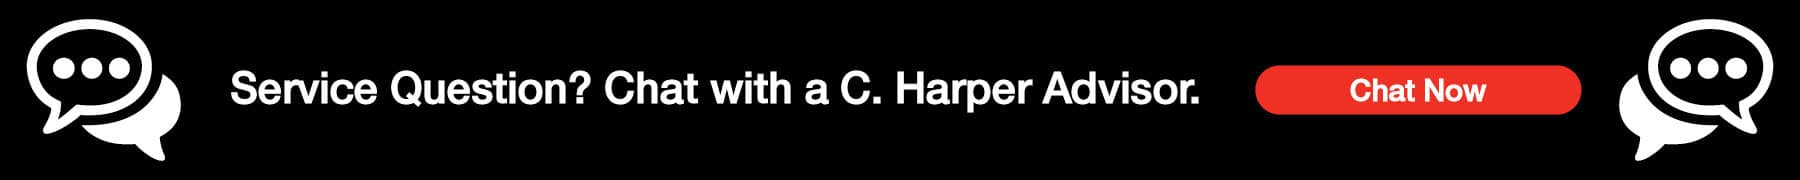 Service Question? Chat with at C. Harper Advisor.